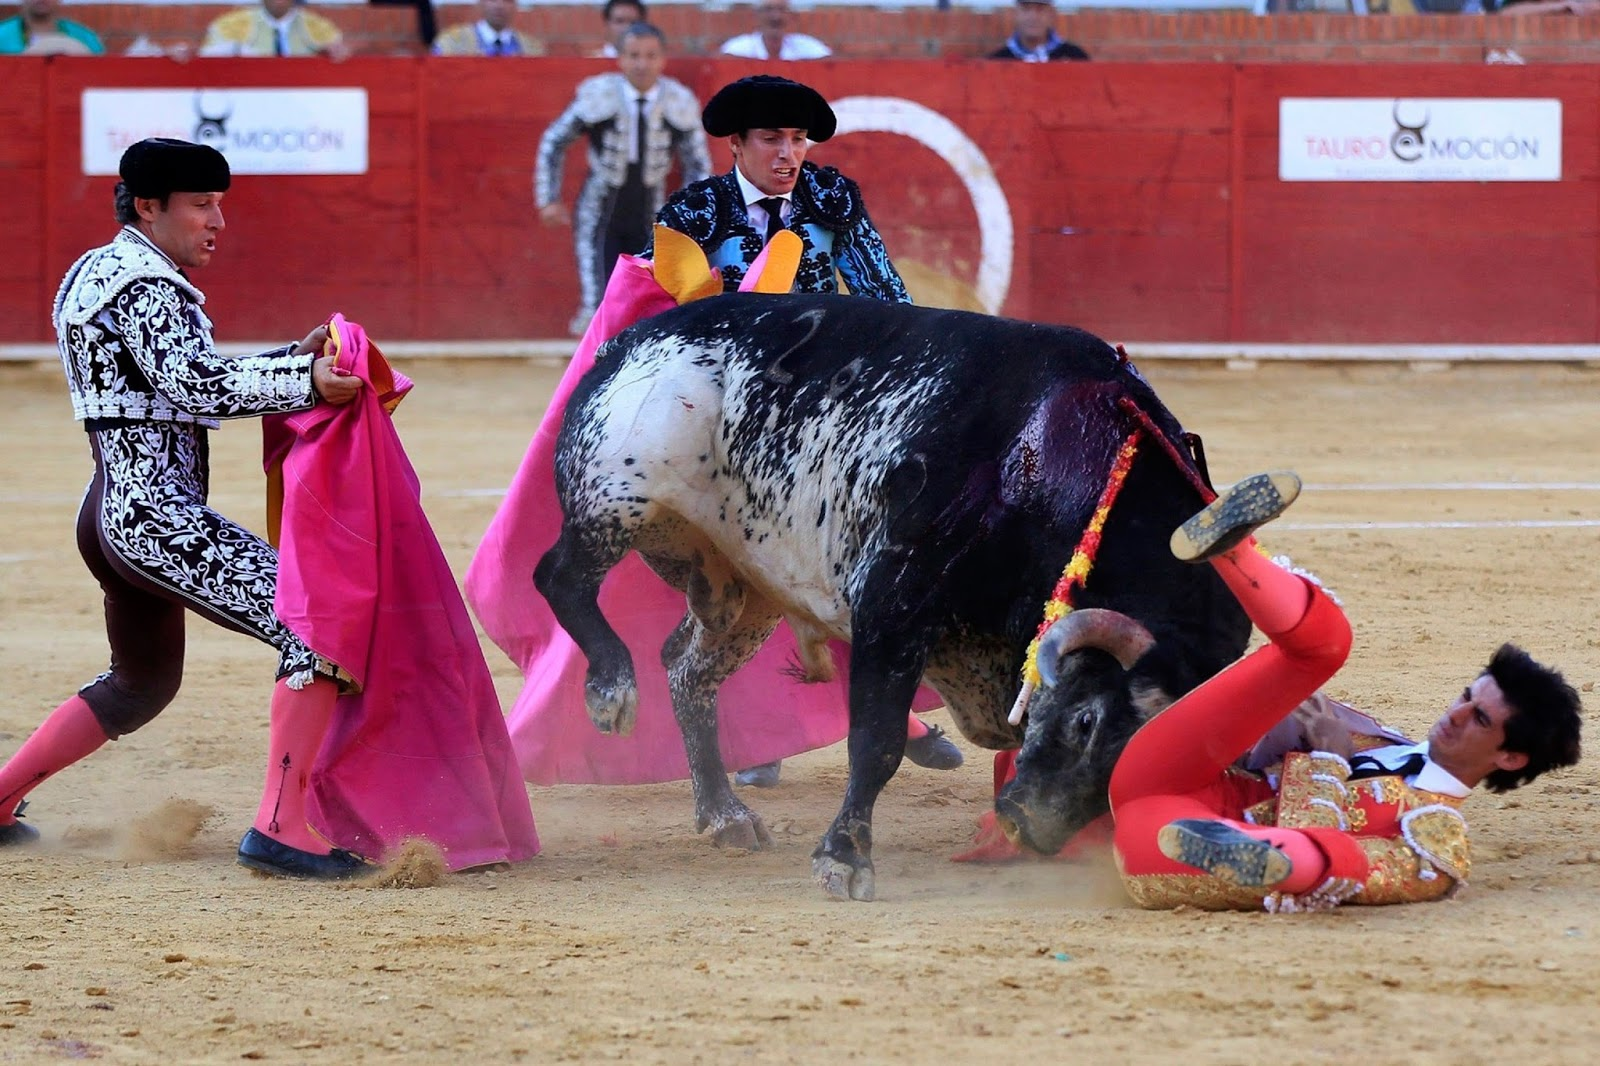 VICTOR BARRIO, MATADOR KILLED